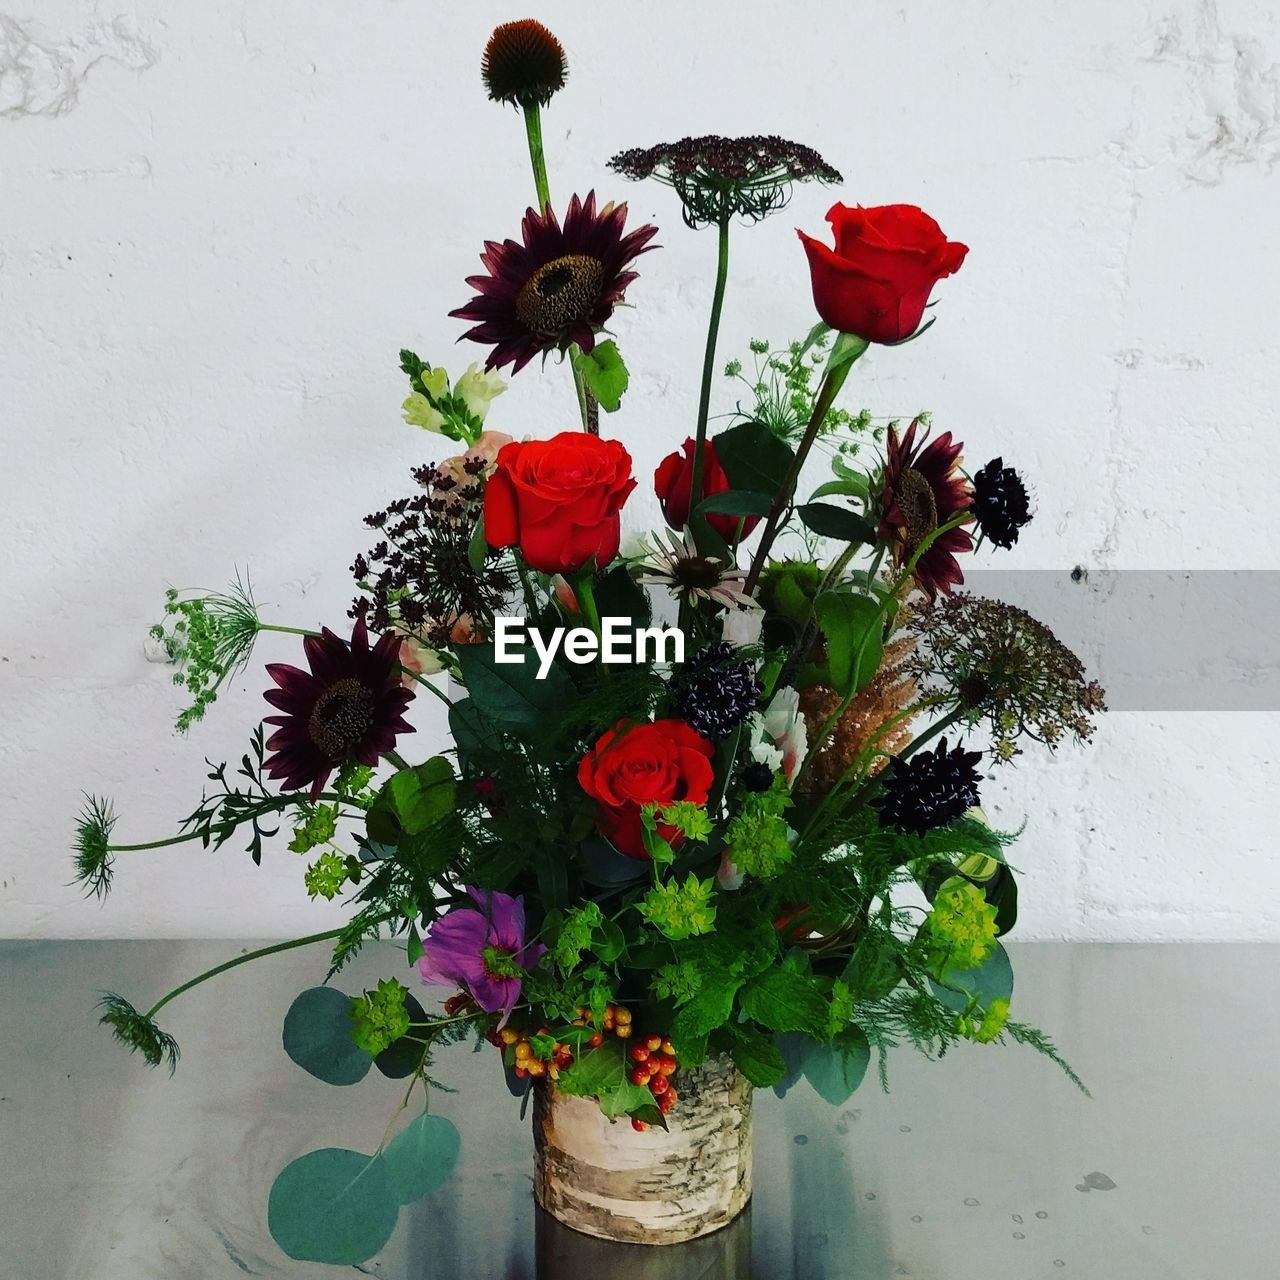 flower, growth, plant, nature, beauty in nature, fragility, red, freshness, potted plant, no people, petal, vase, leaf, multi colored, blooming, indoors, flower head, close-up, day